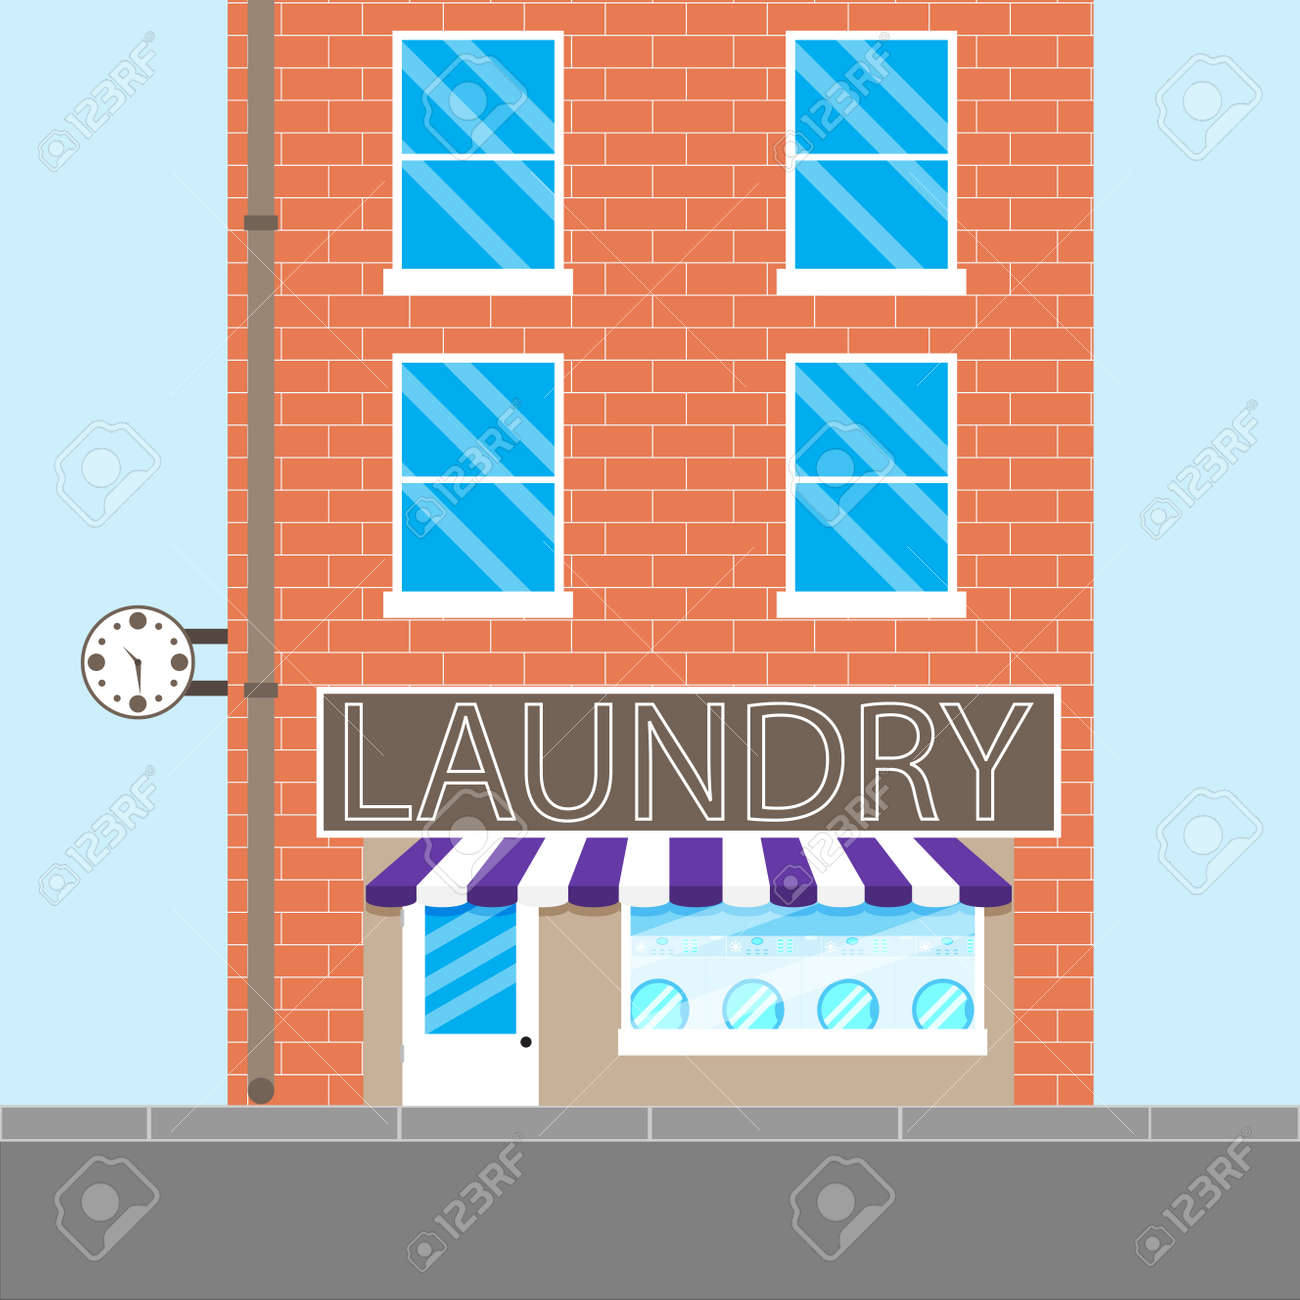 Laundry Brick Building Washing Machine And Dry Cleaning Service Vector Illustration Stock